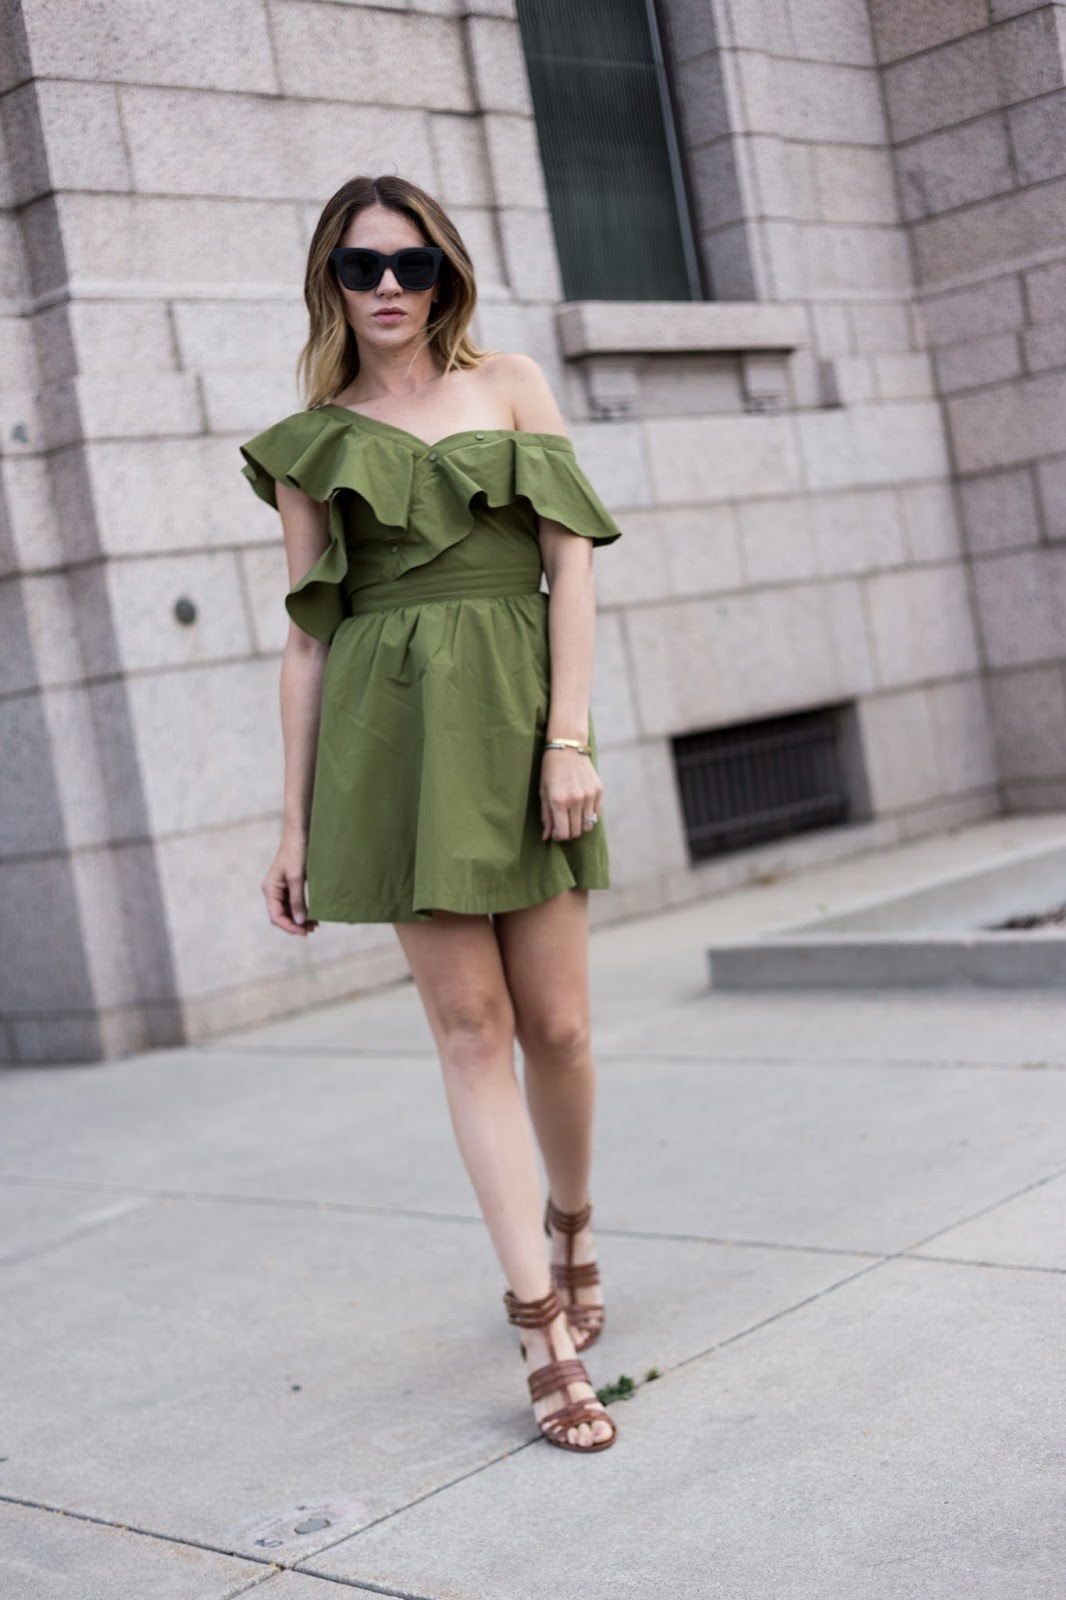 Designer Dupes: Self Portrait Dupes Under $100 by Colorado fashion blogger Eat Pray Wear Love